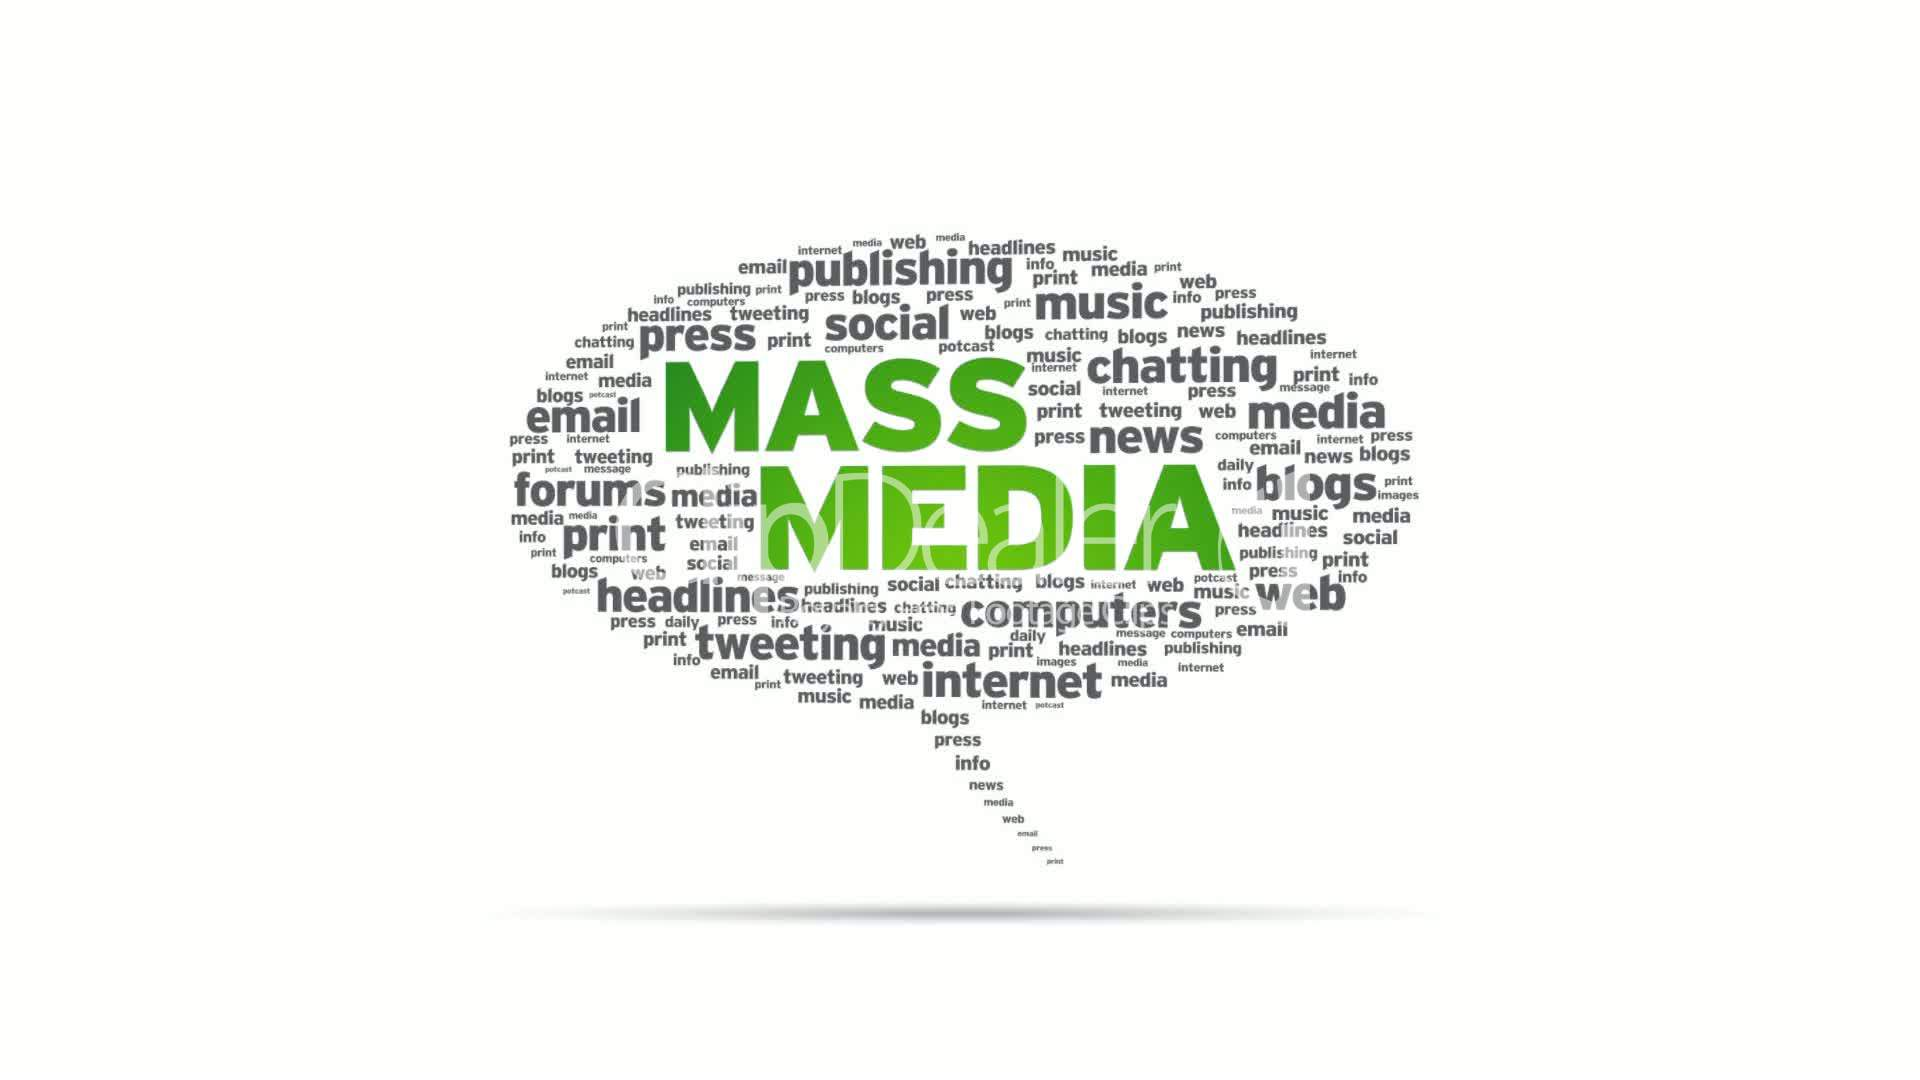 Mass Media: Royalty-free video and stock footage